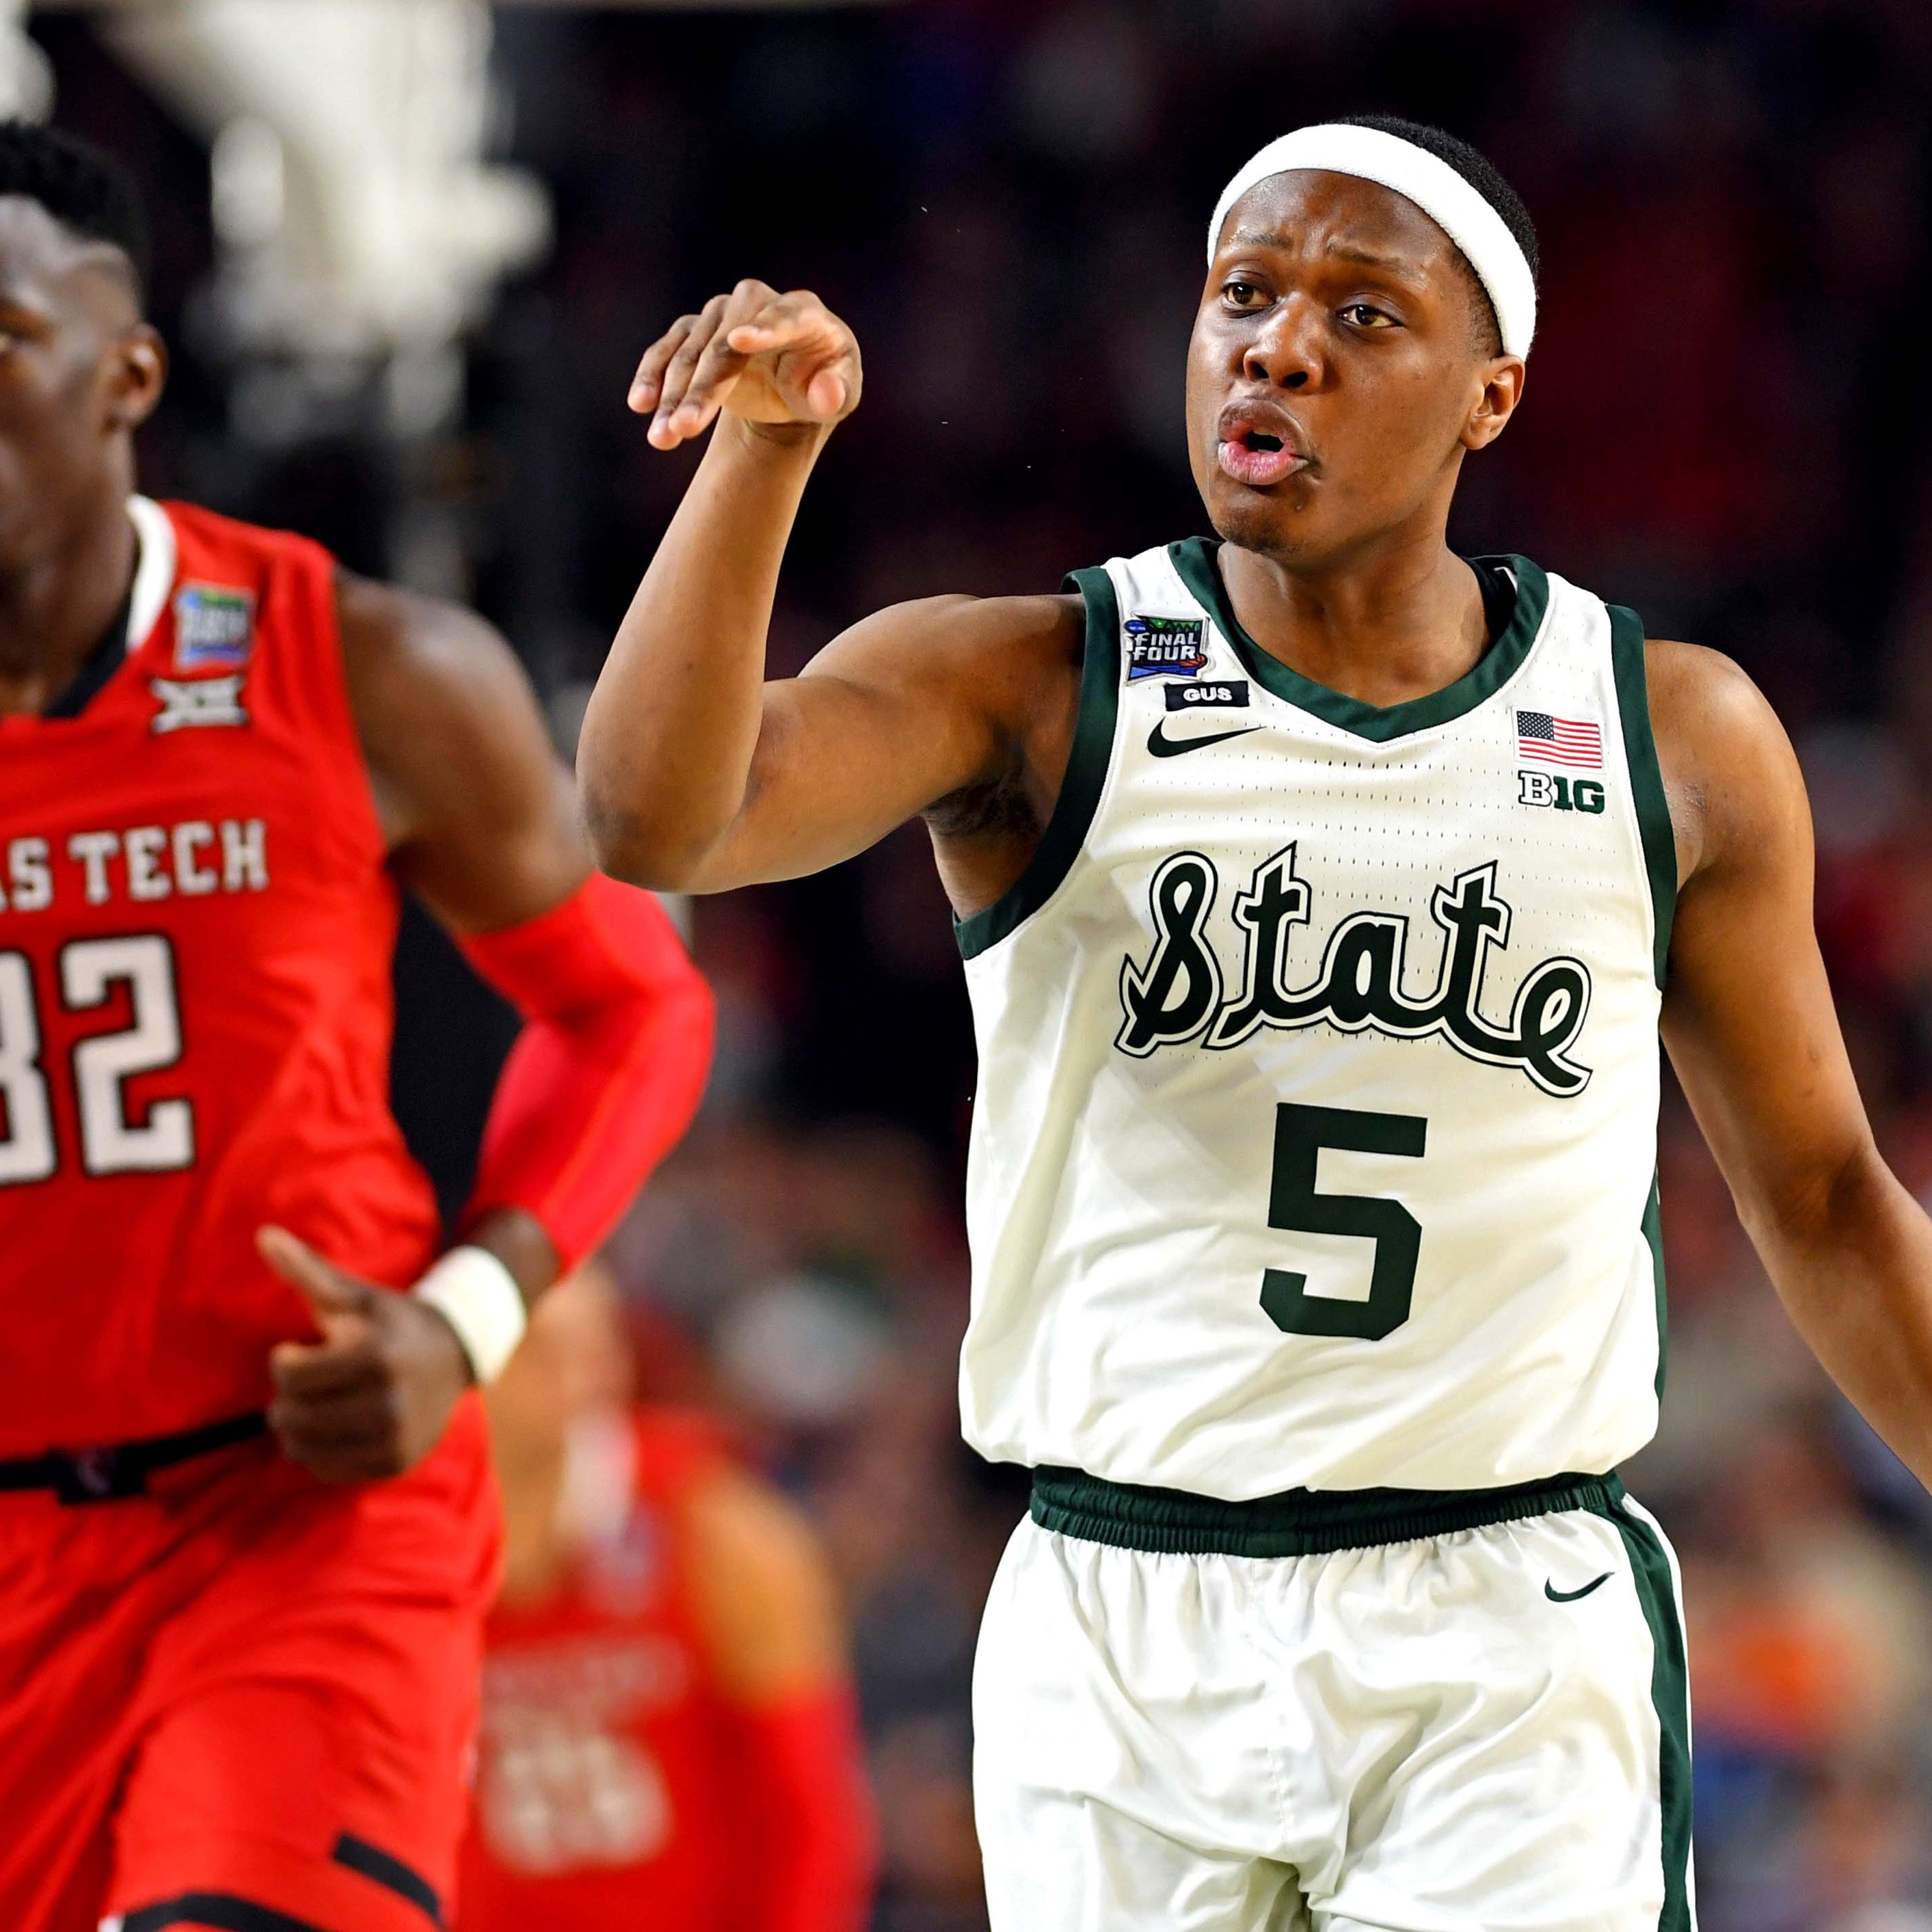 Couch: Amid a humbling defeat, Cassius Winston sets a critical tone for MSU's future